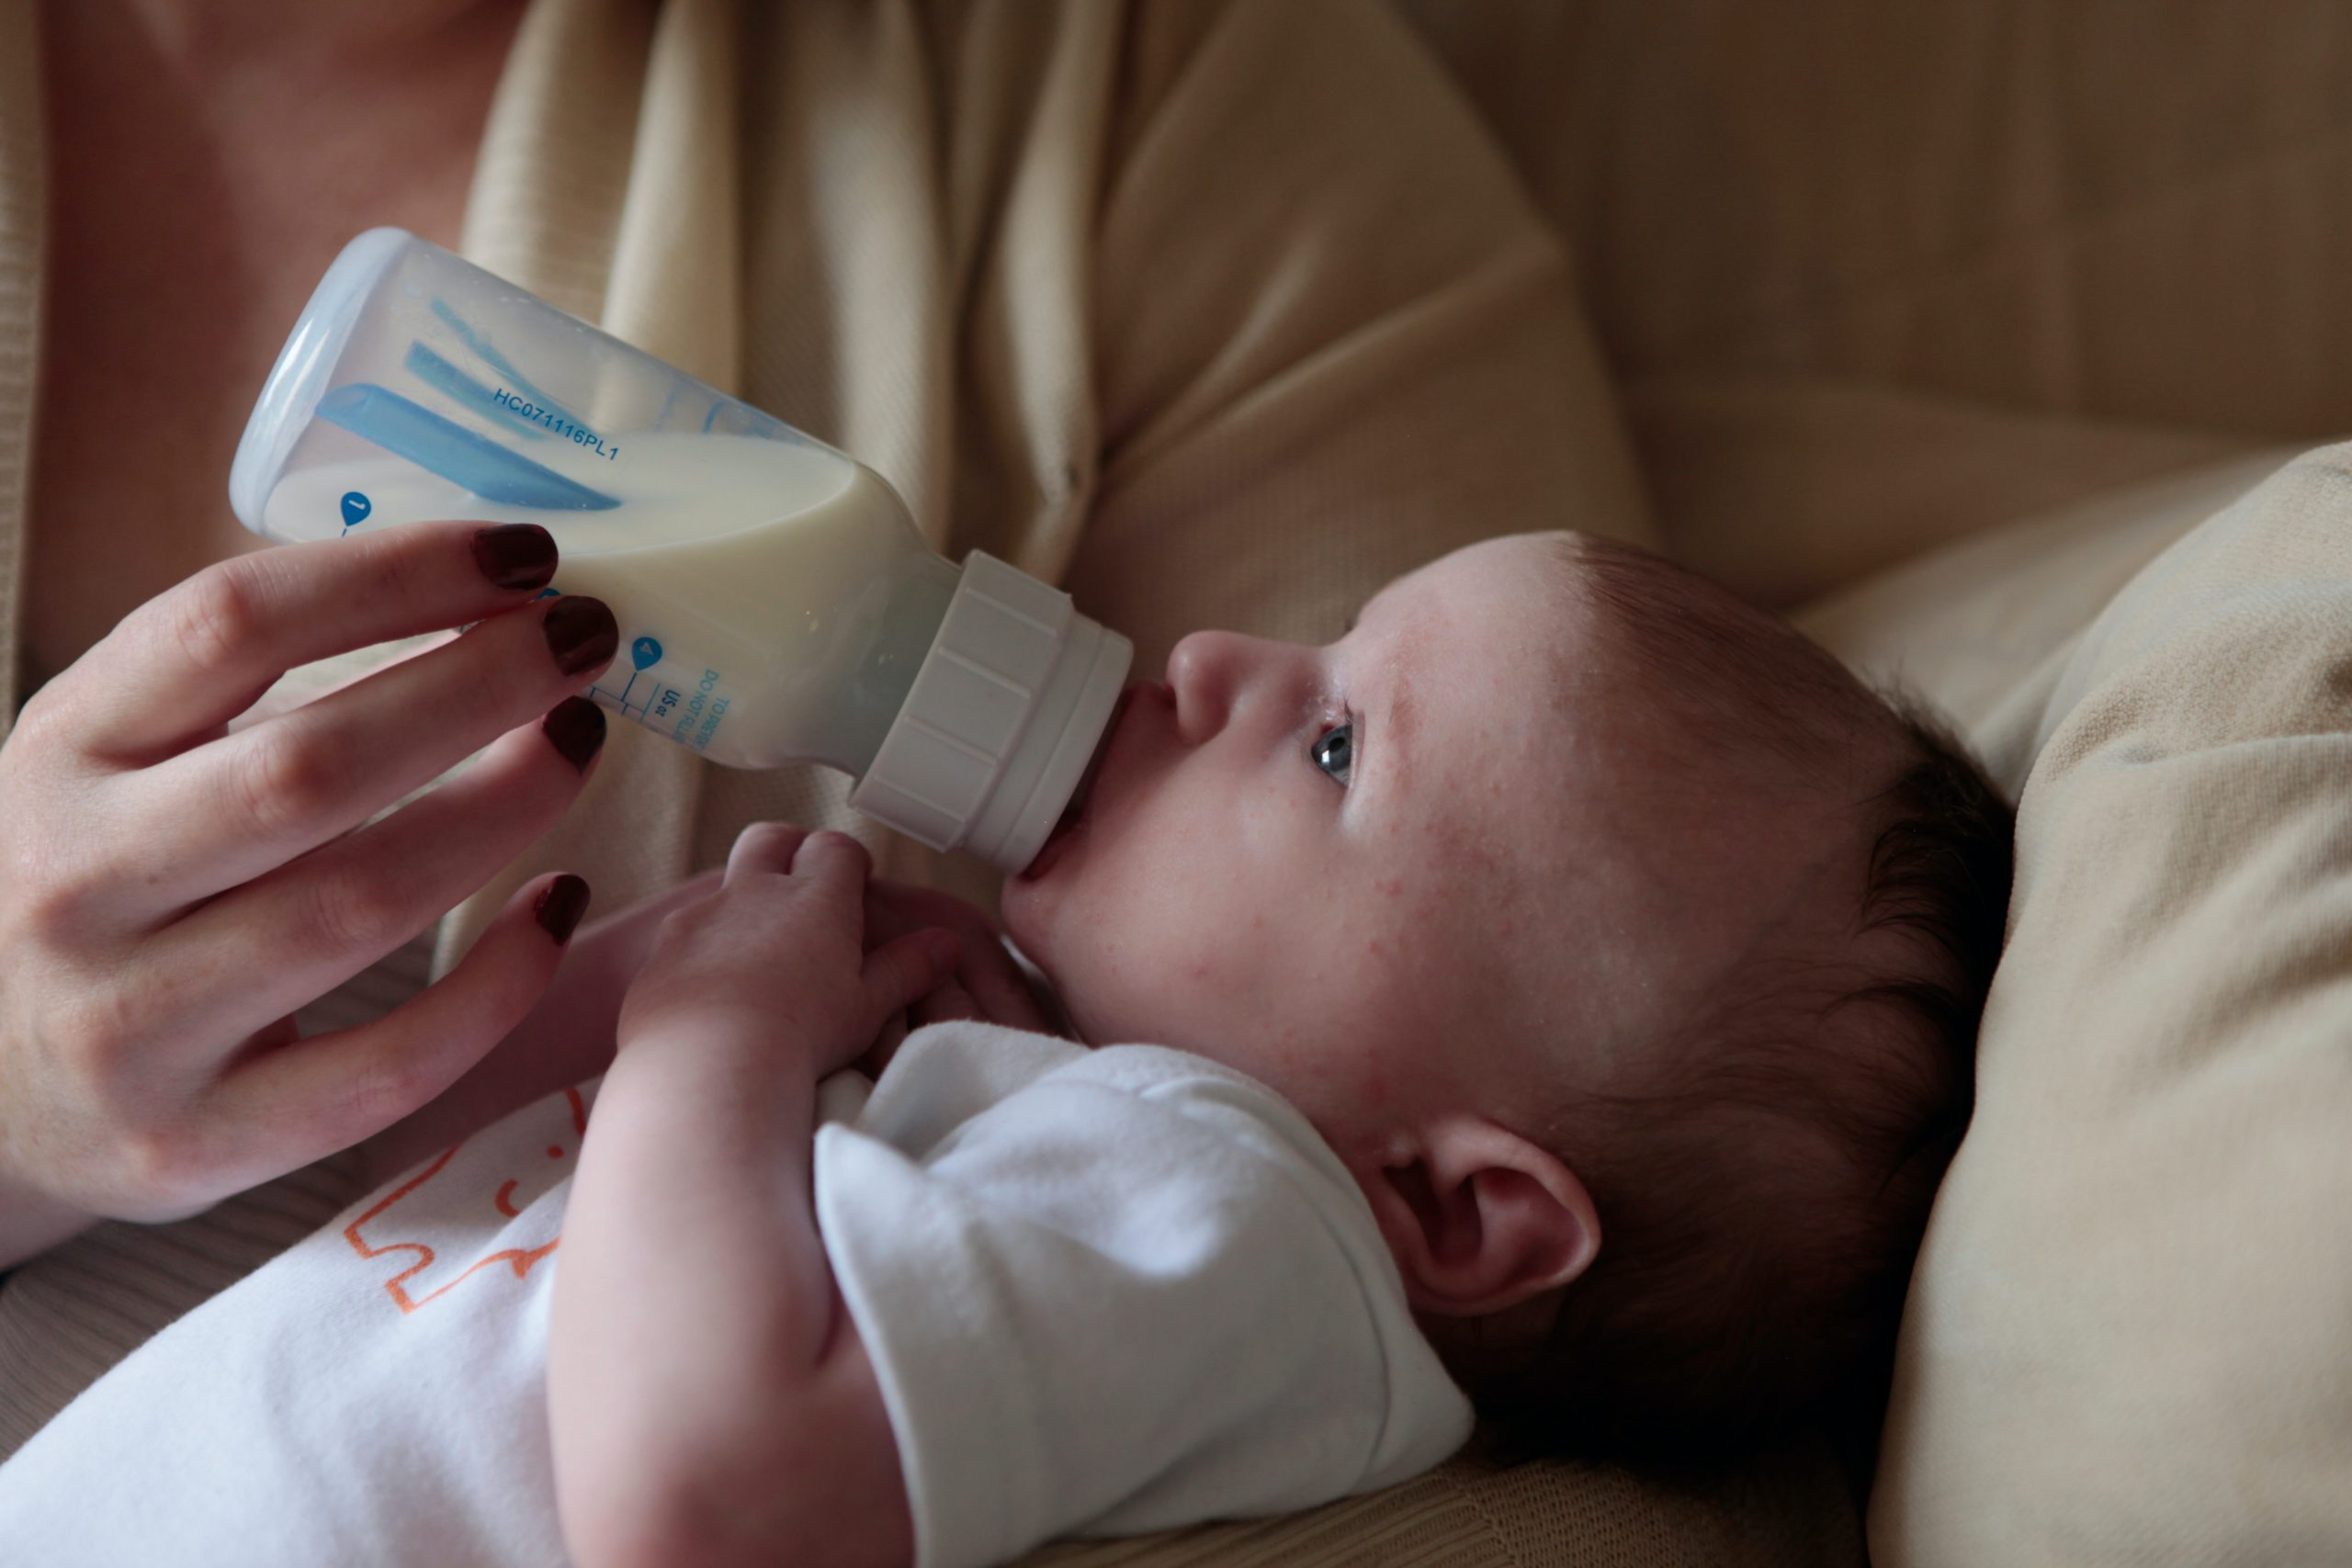 Baby being fed with milk bottle